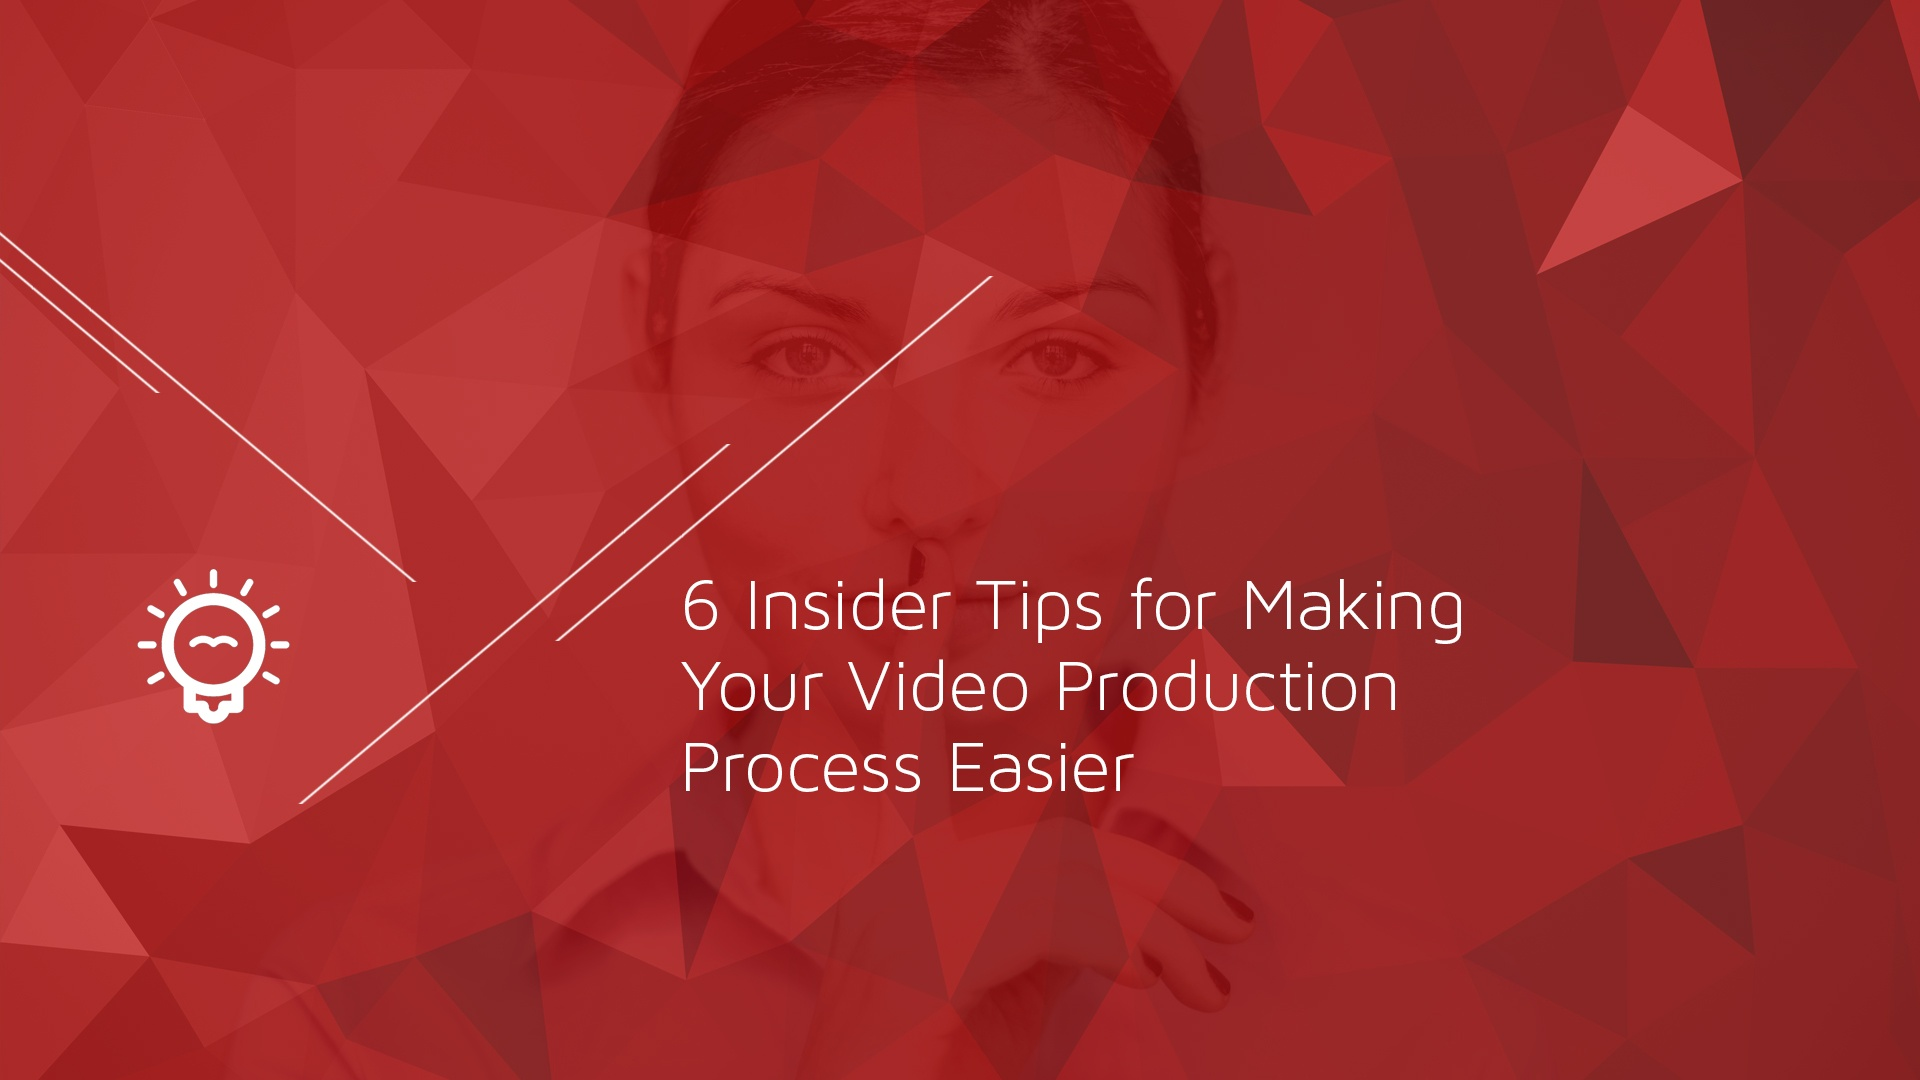 6 Insider Tips for Making Your Video Production Process Easier